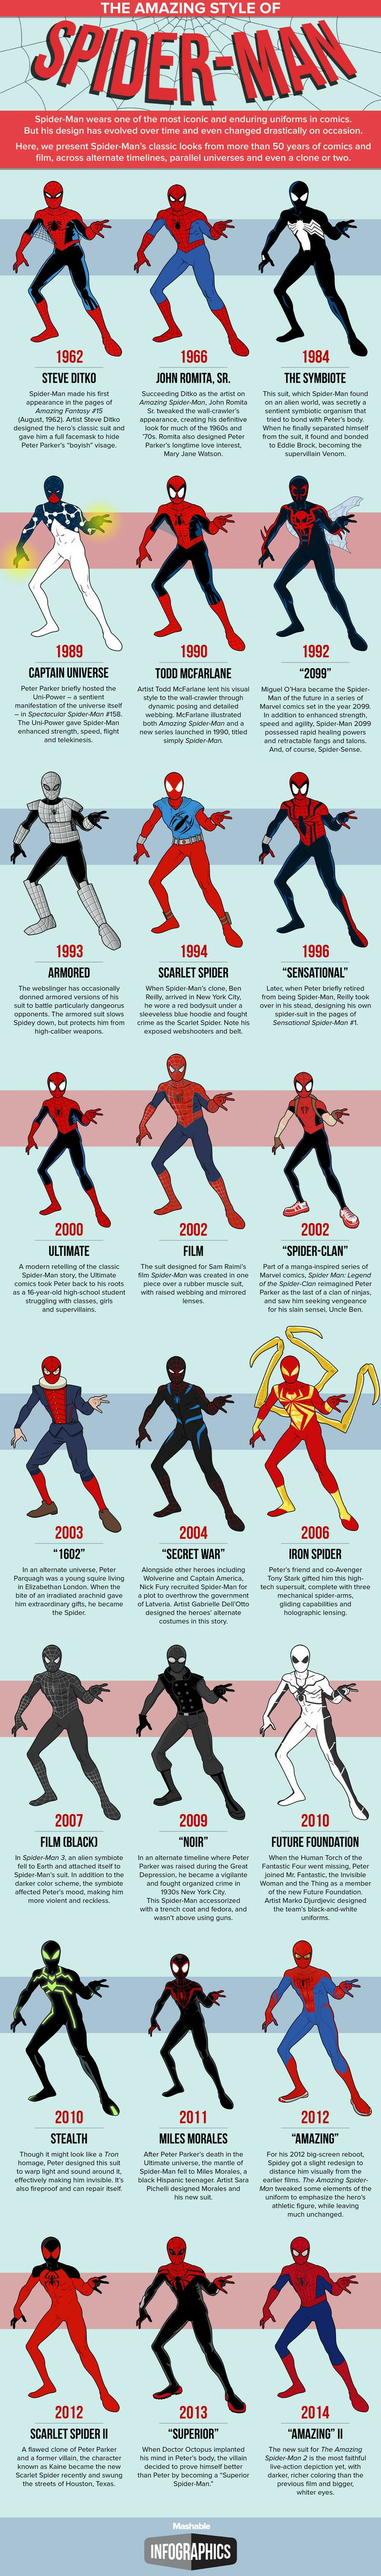 All the costumes Spidey has worn over the years!